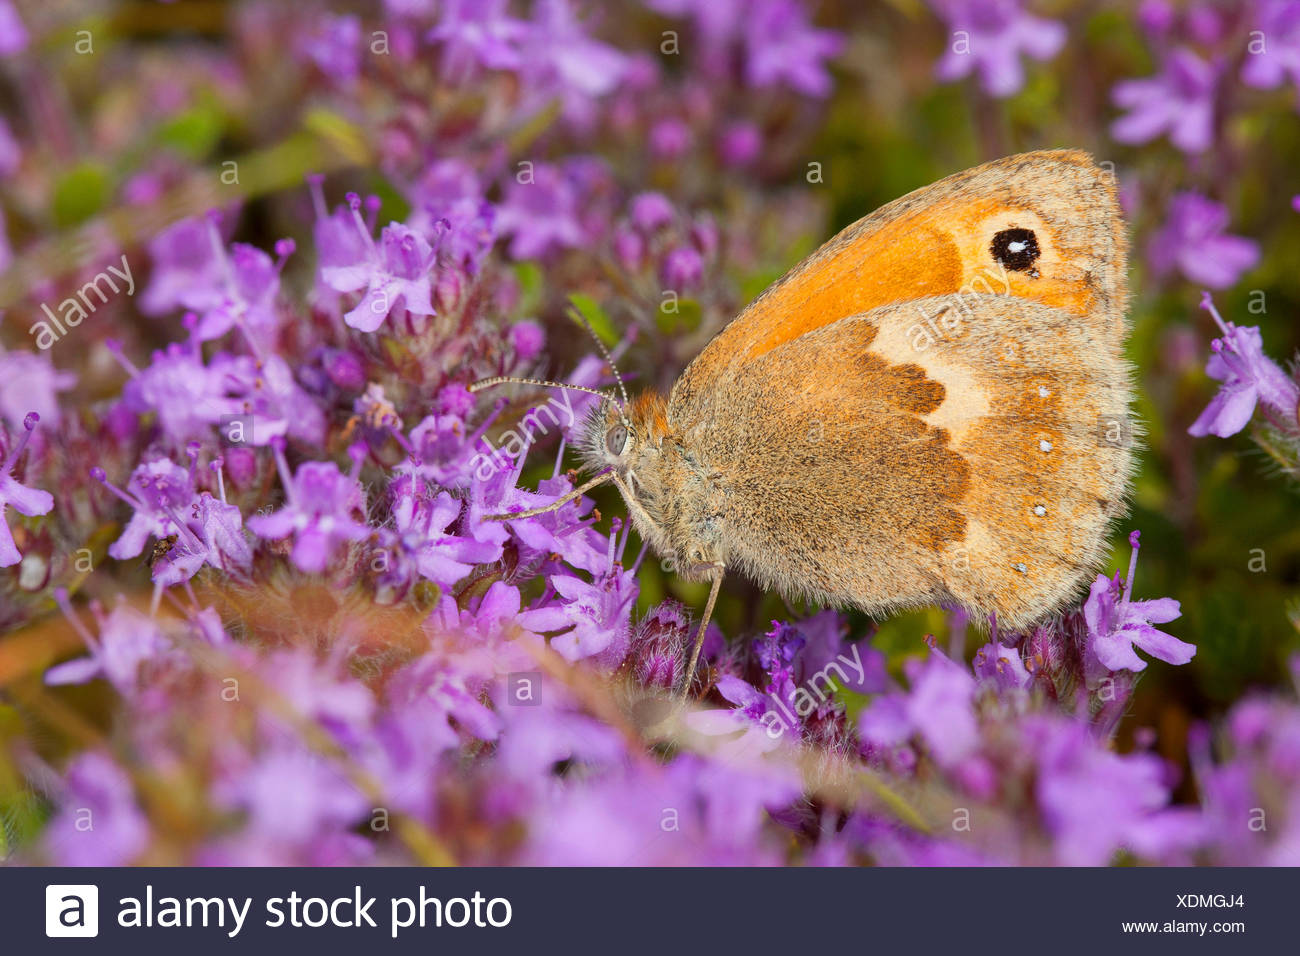 small heath (Coenonympha pamphilus), visiting thyme flowers, Germany - Stock Image